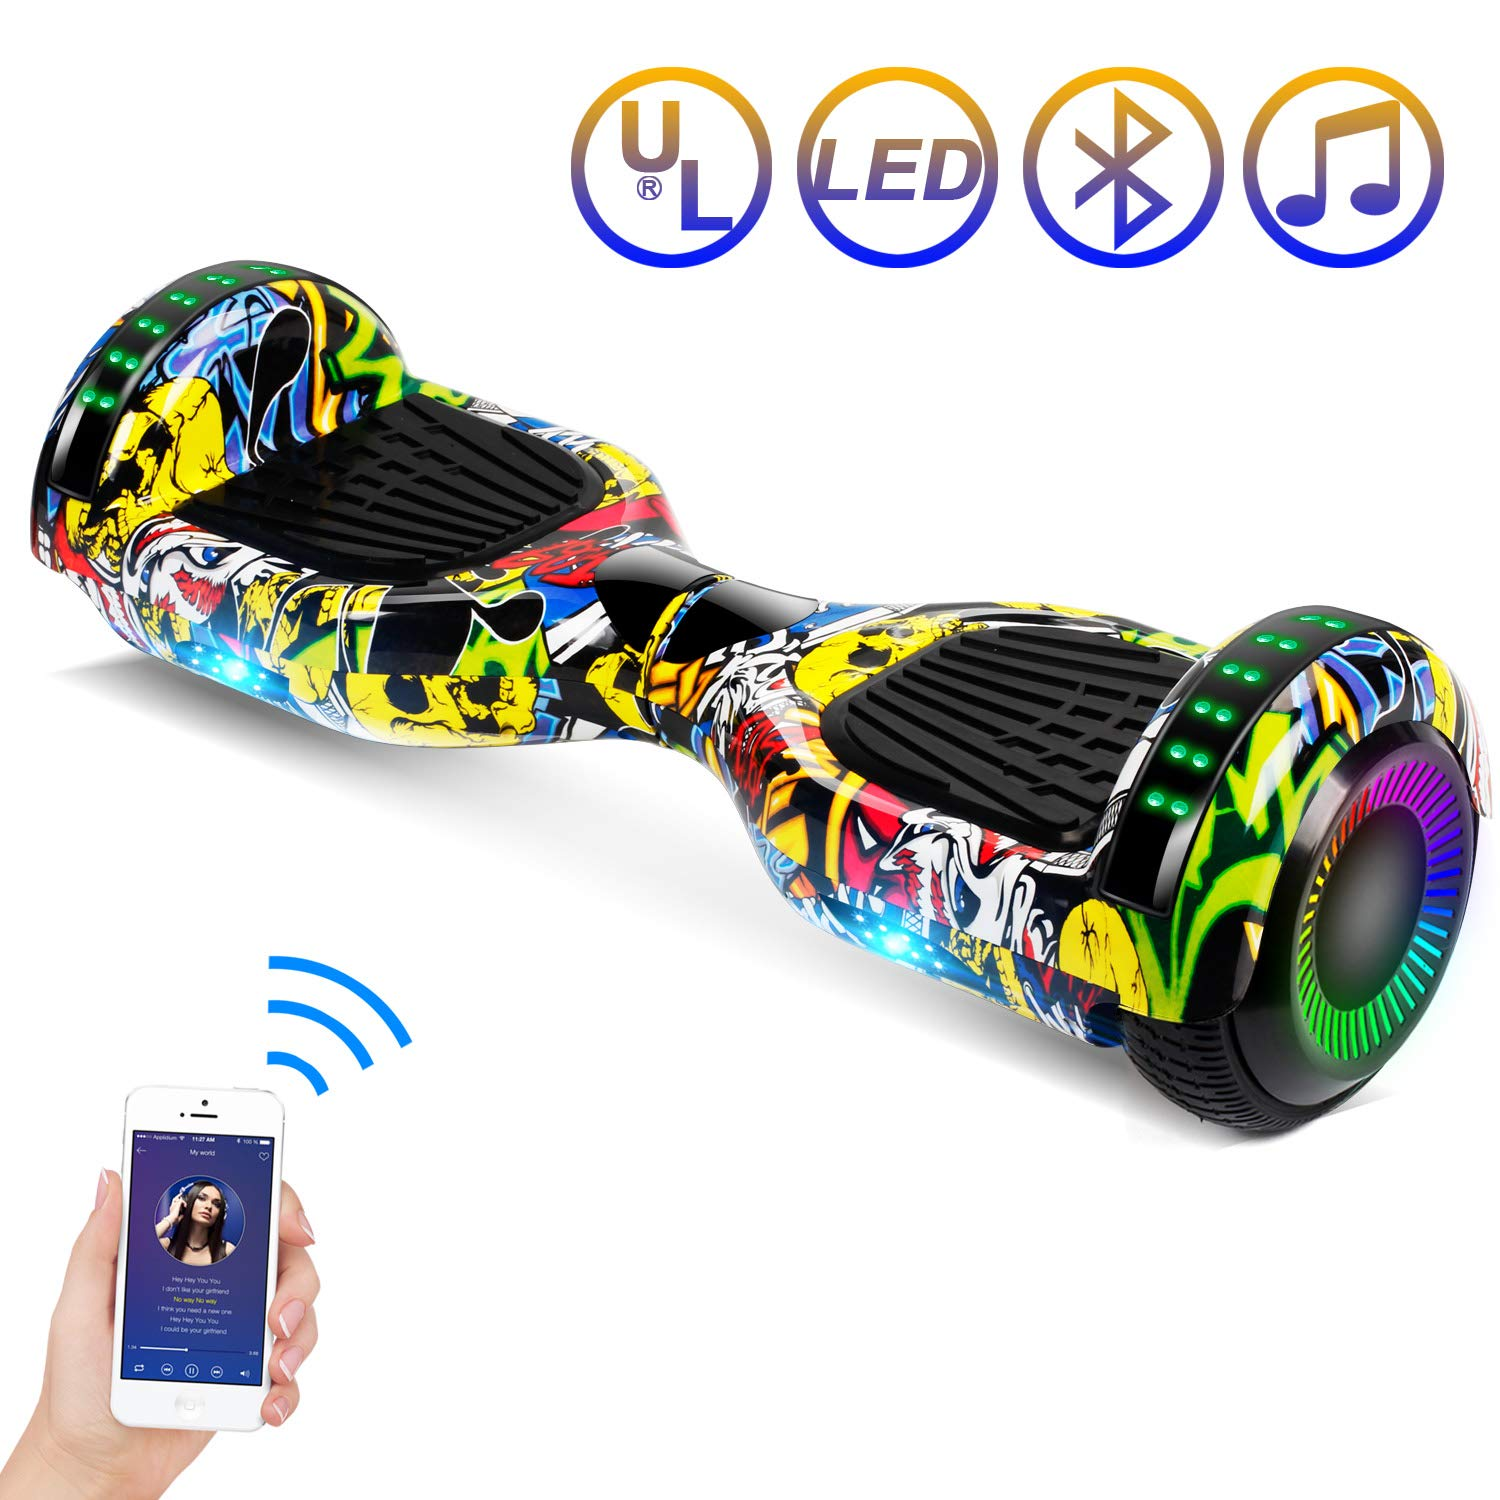 SISIGAD Hoverboard, 6.5 Two-Wheel Self Balancing Hoverboard w Bluetooth Speaker – Flashing Tunnel Series